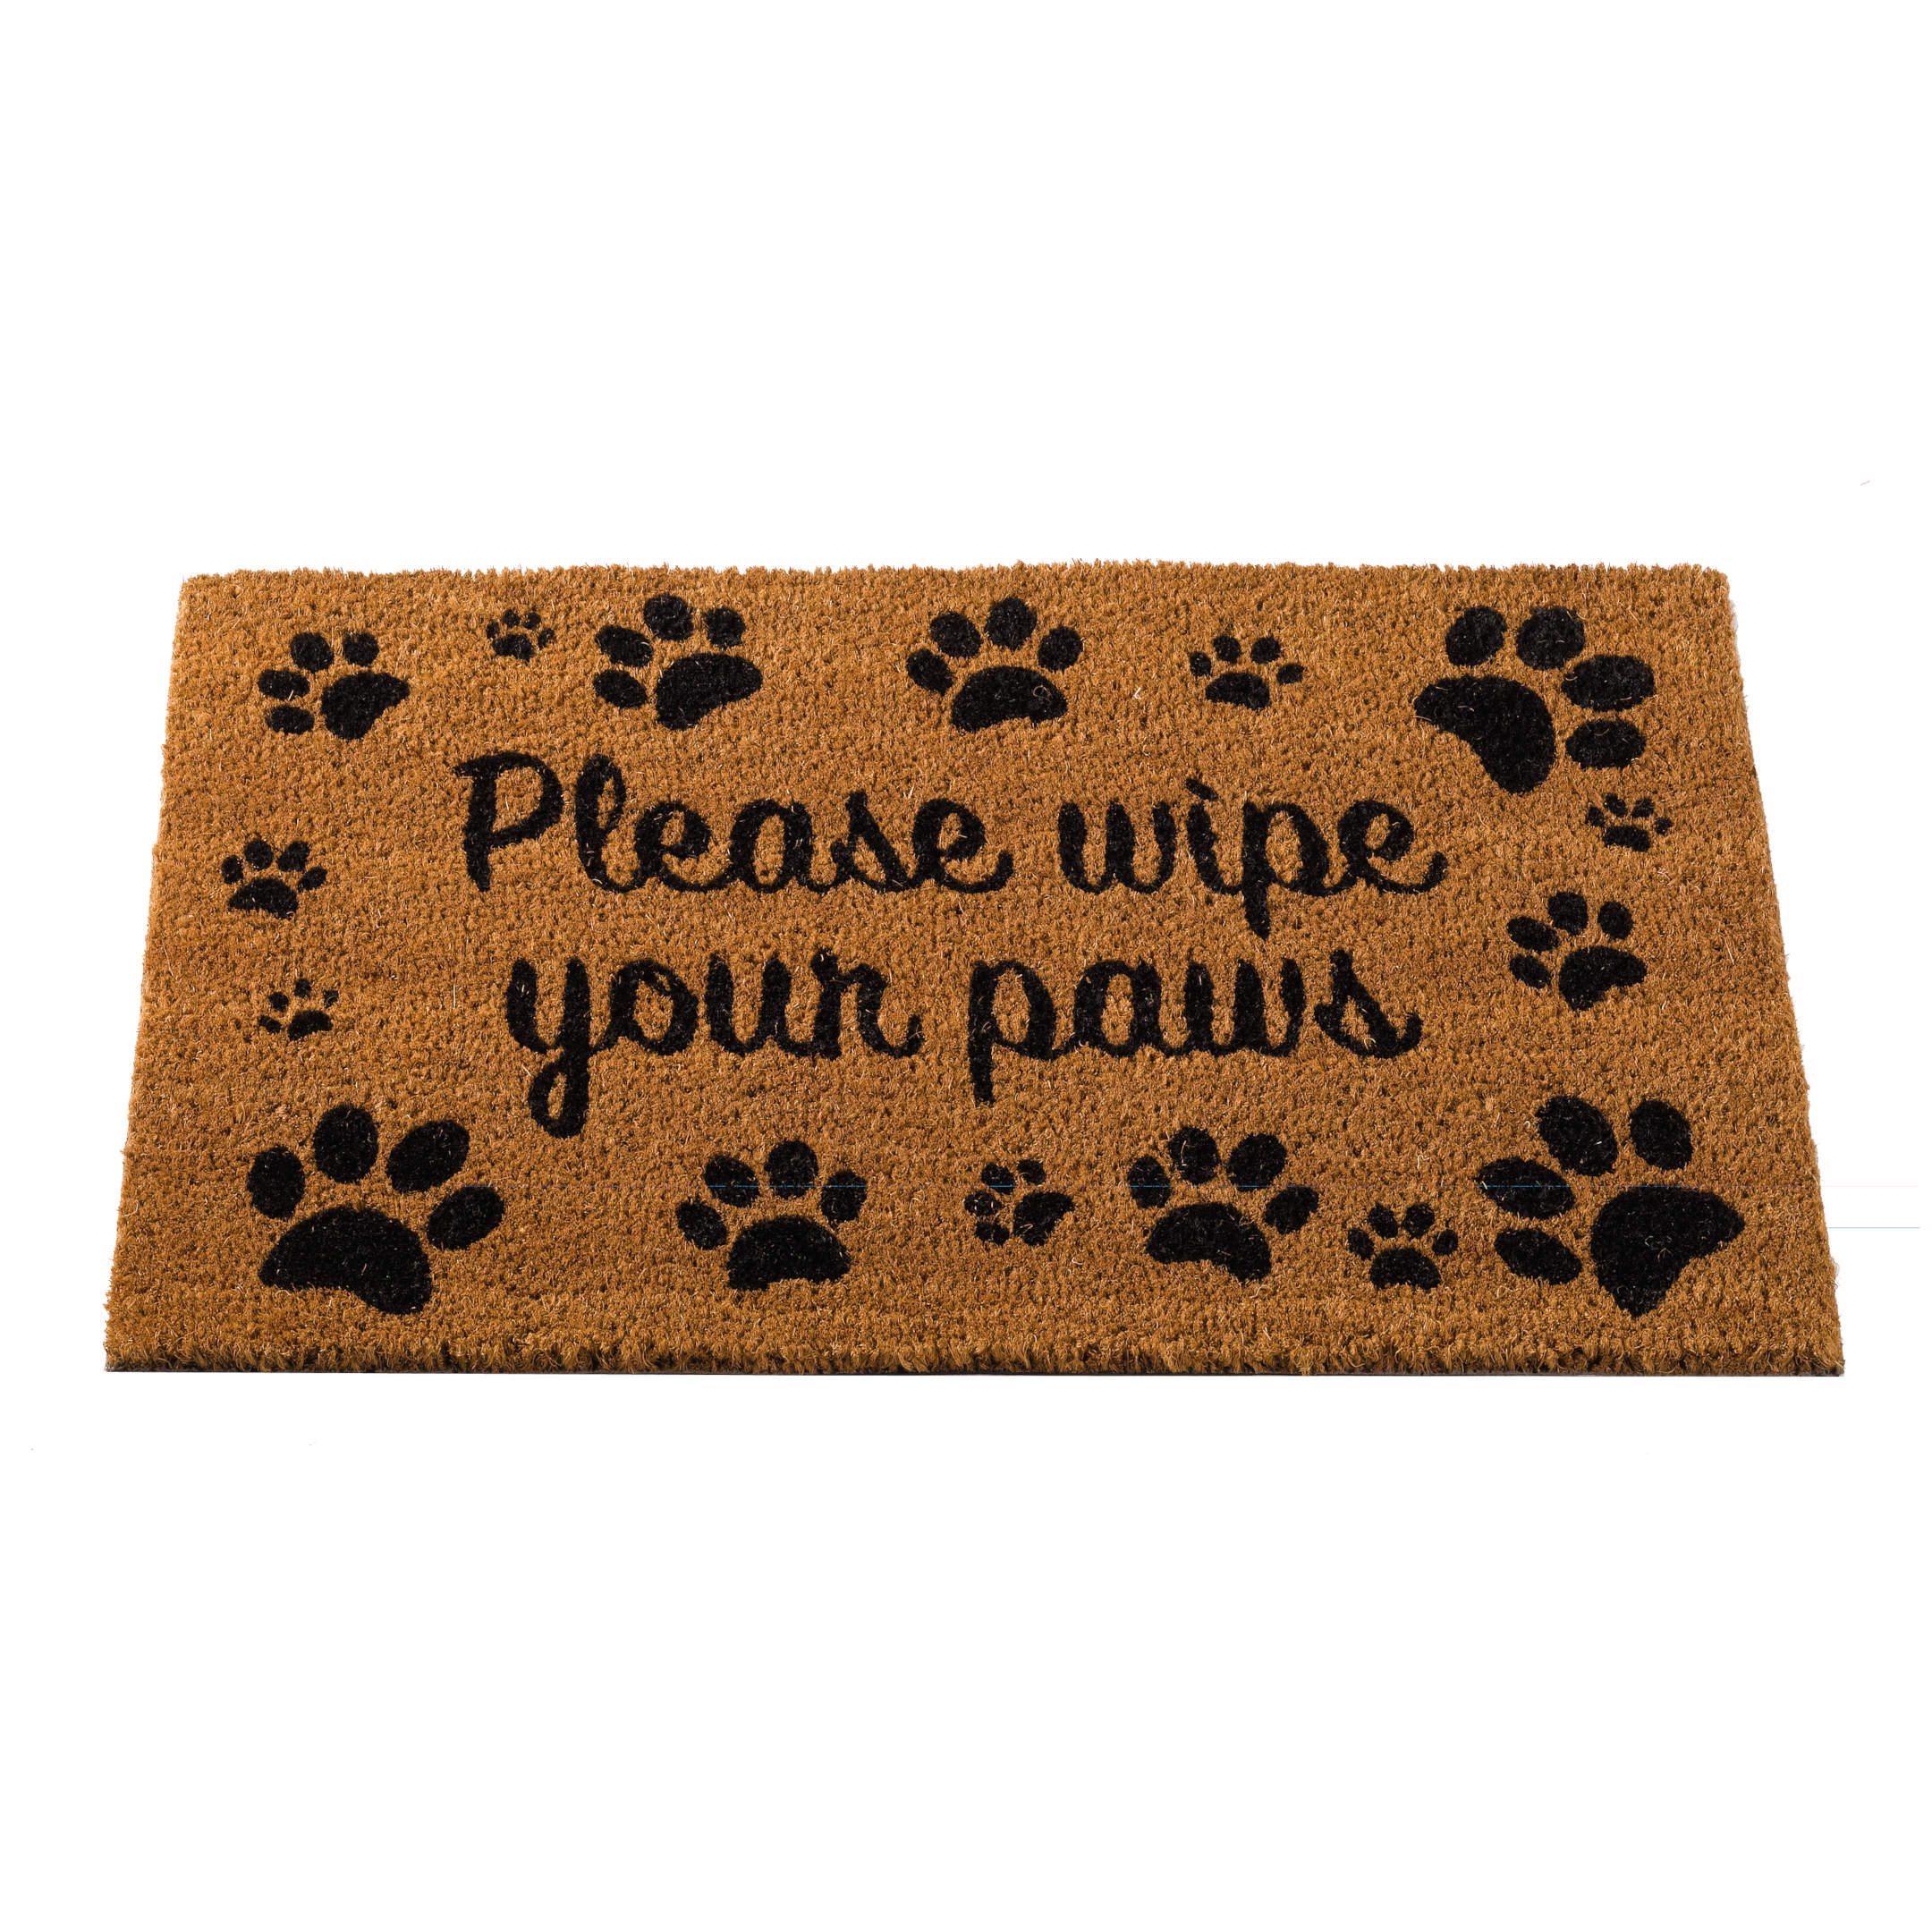 Wipe Your Paws # rohožka pred dvere